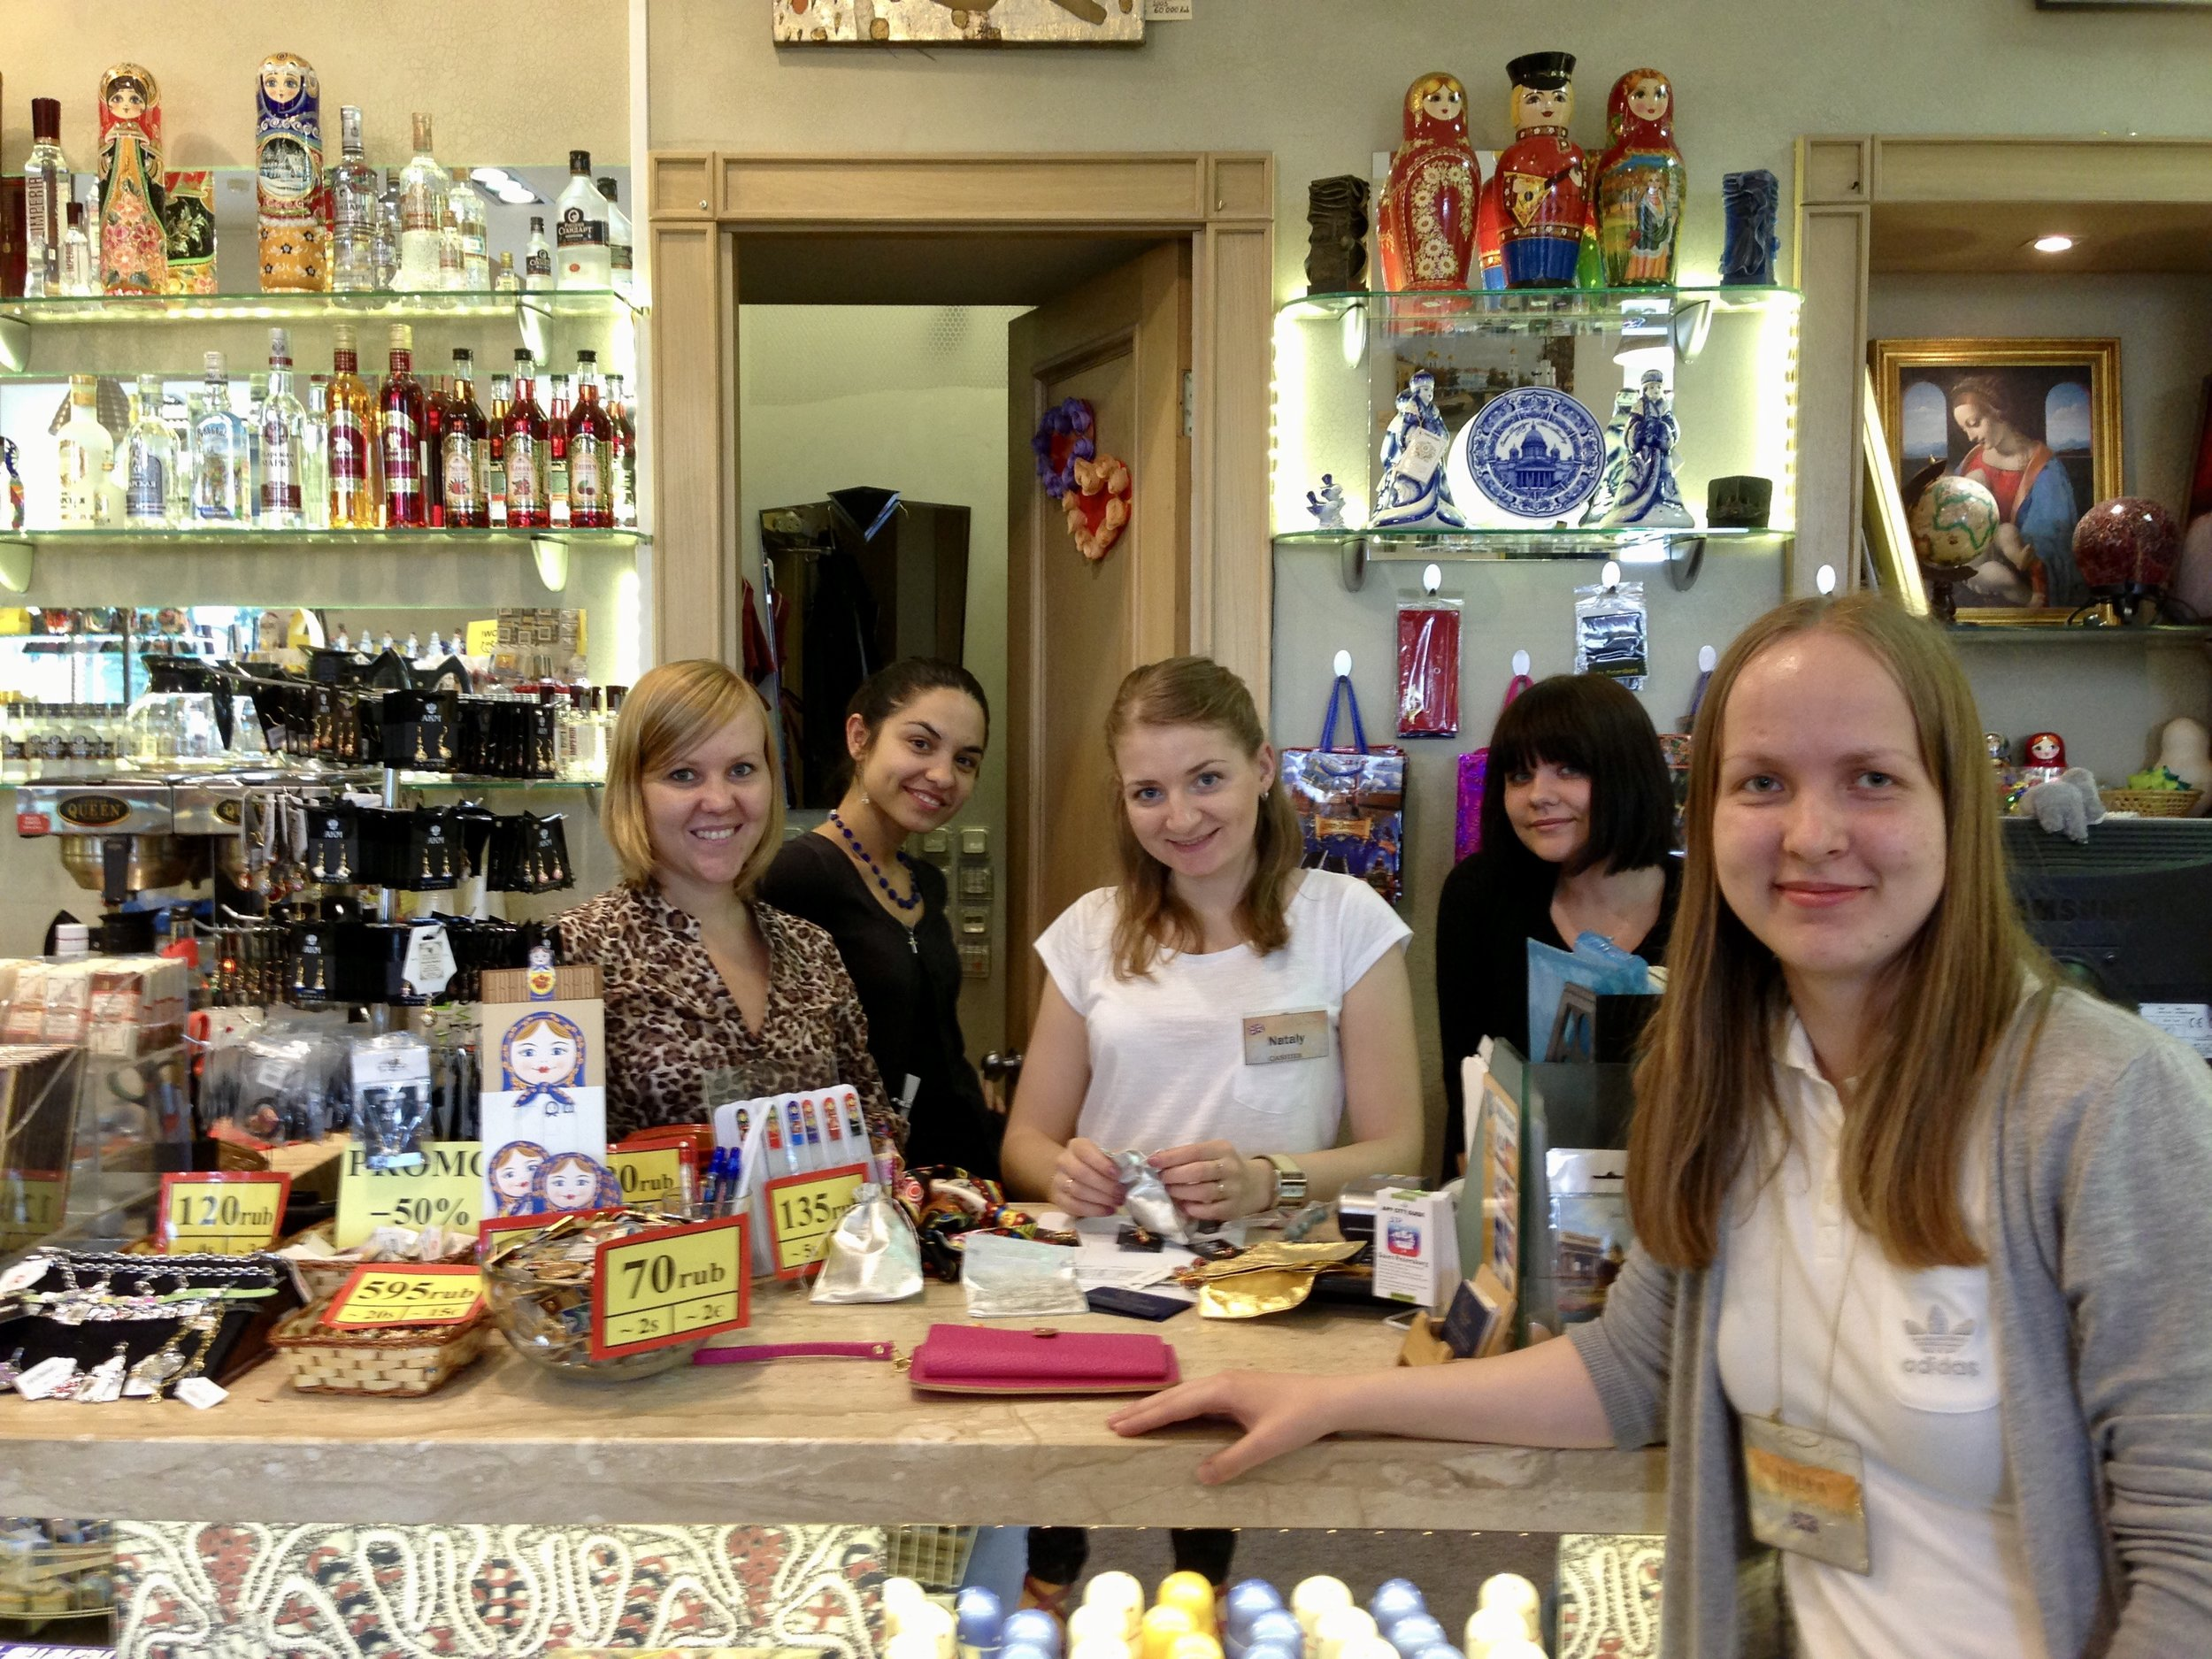 Five of the friendliest, sweetest, funnest girls in a Moscow souvenir shop